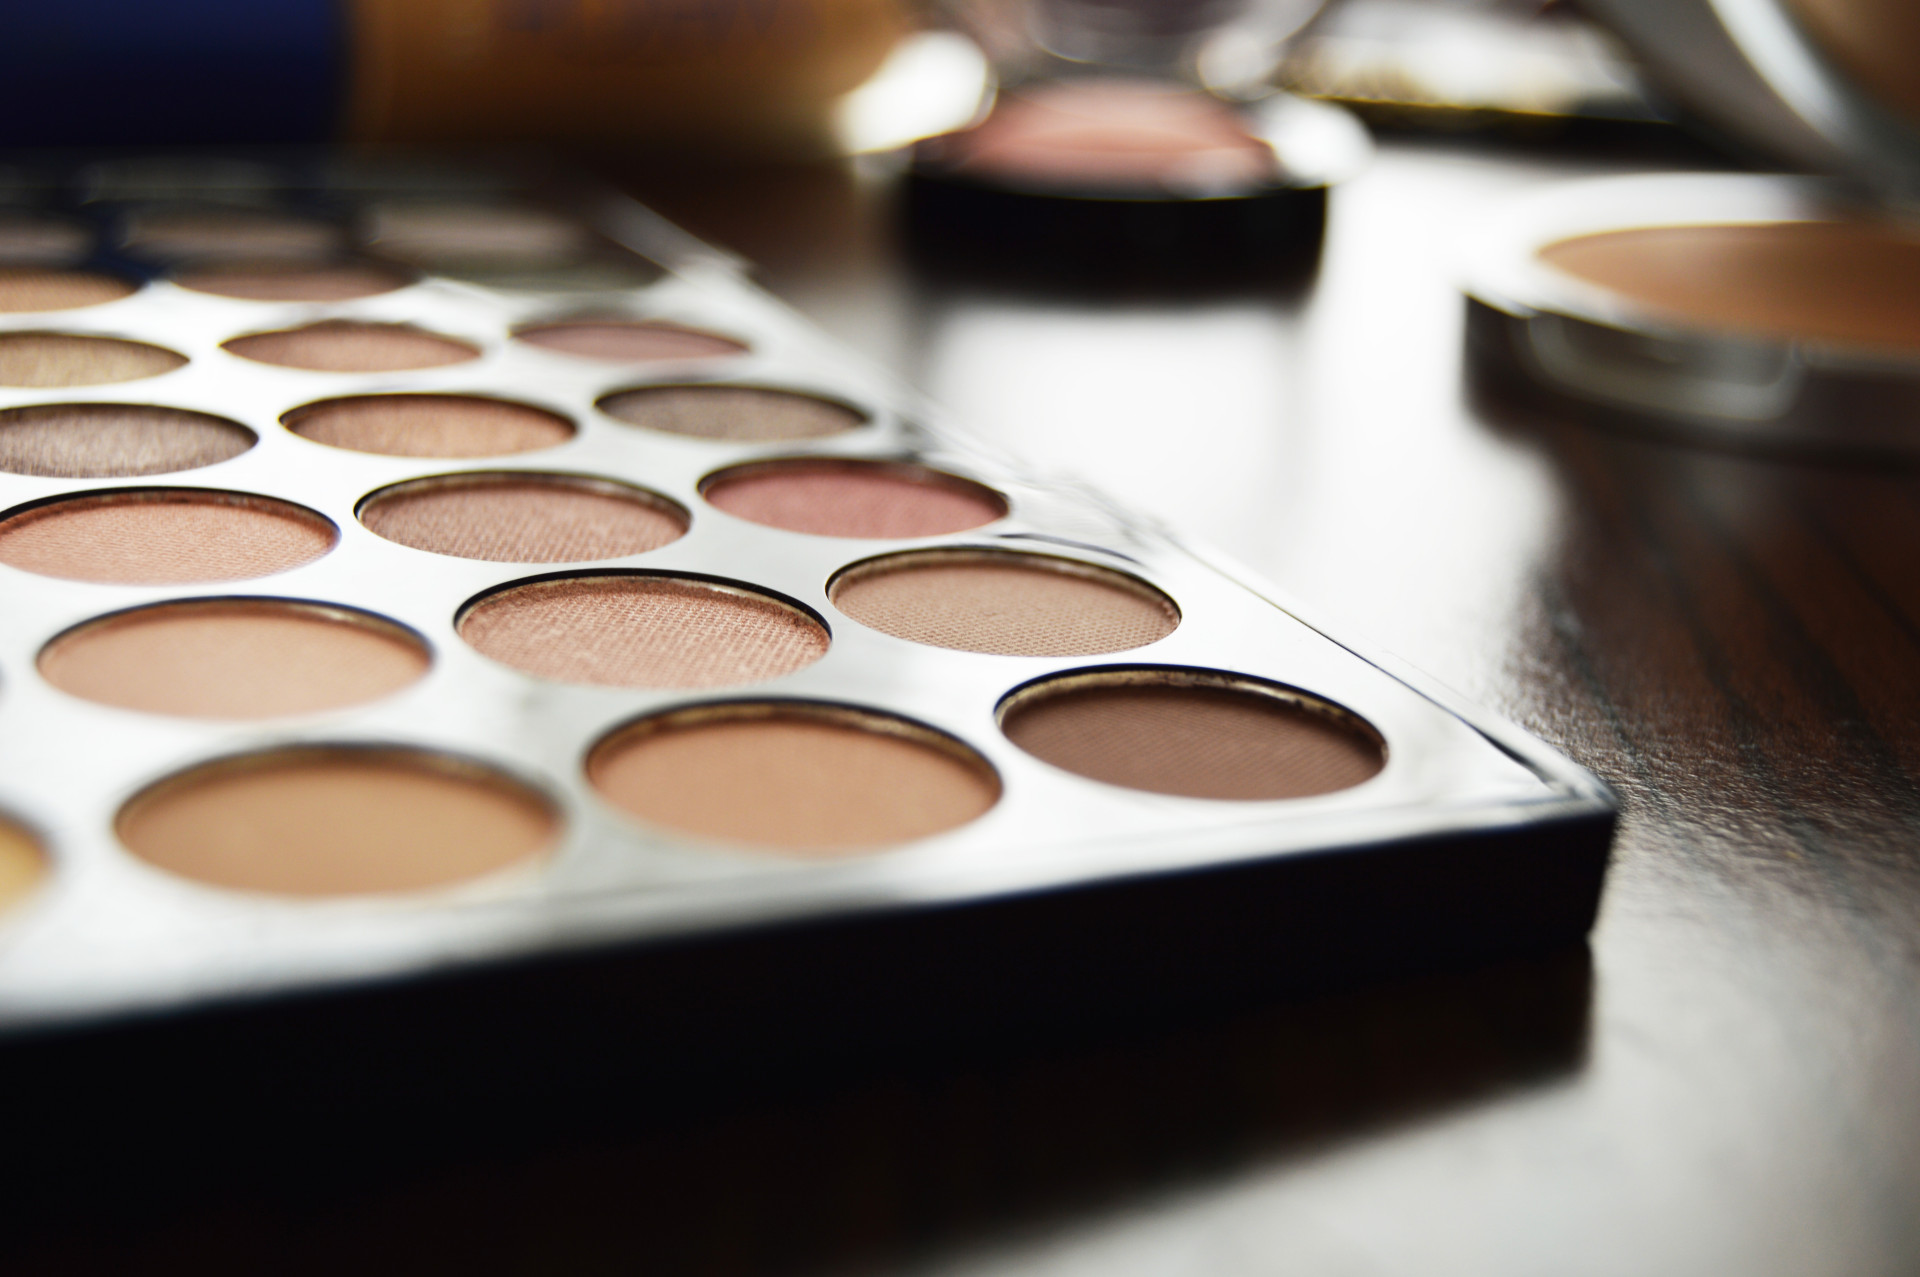 Weekend Makeup | Makeup Revolution Ultra Eyeshadow Palette Flawless has 32 pigmented and soft eyeshadows.